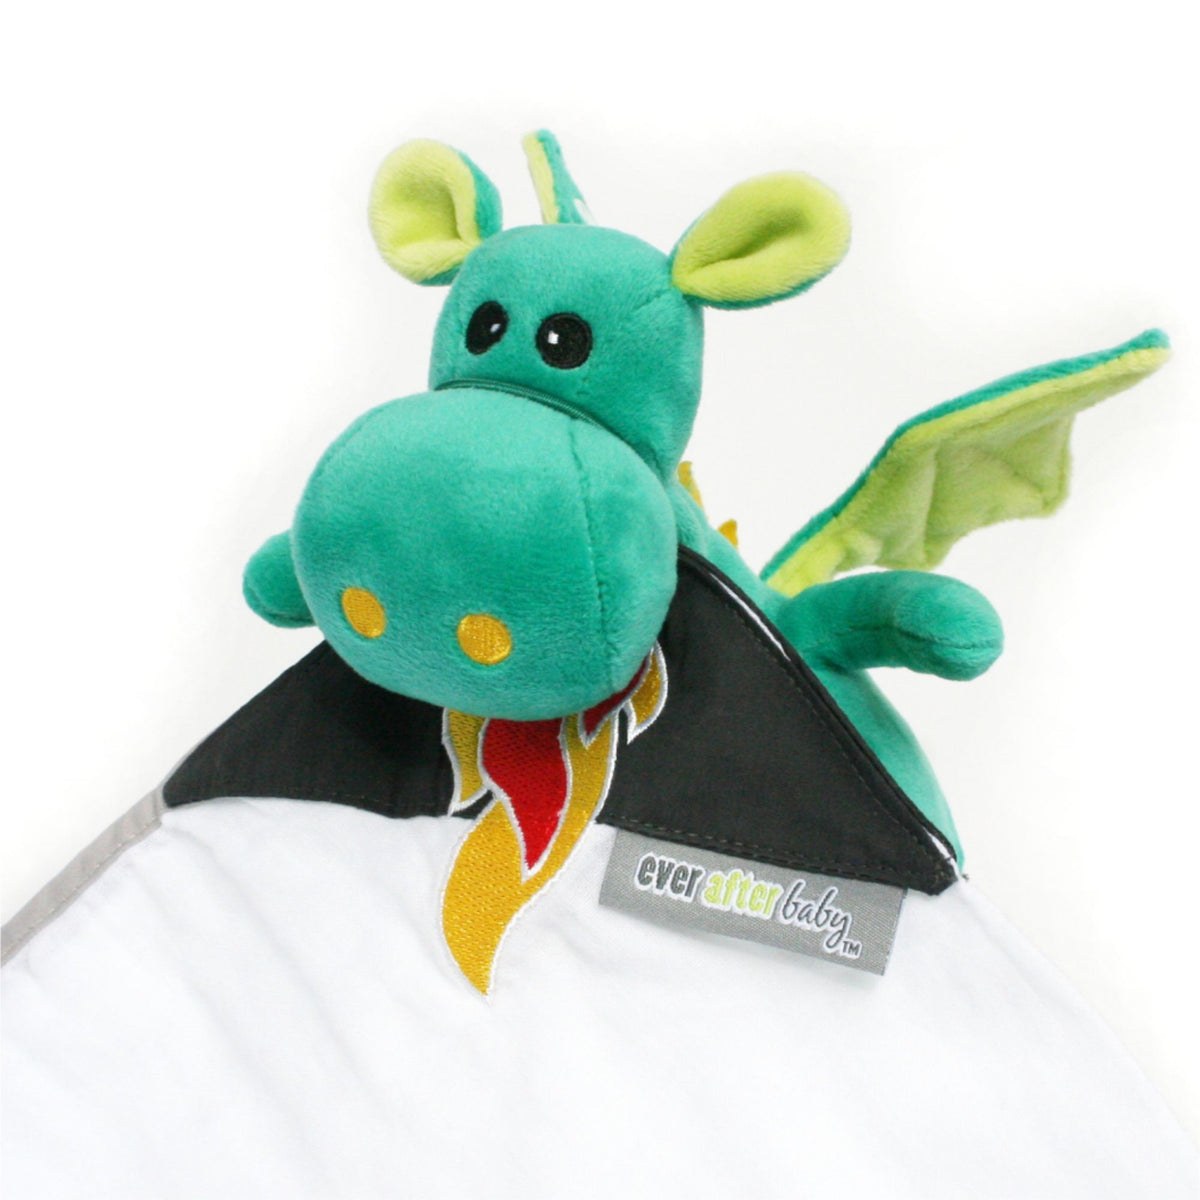 Dragon Squire Travel Toy - Blaze (3888430448674)